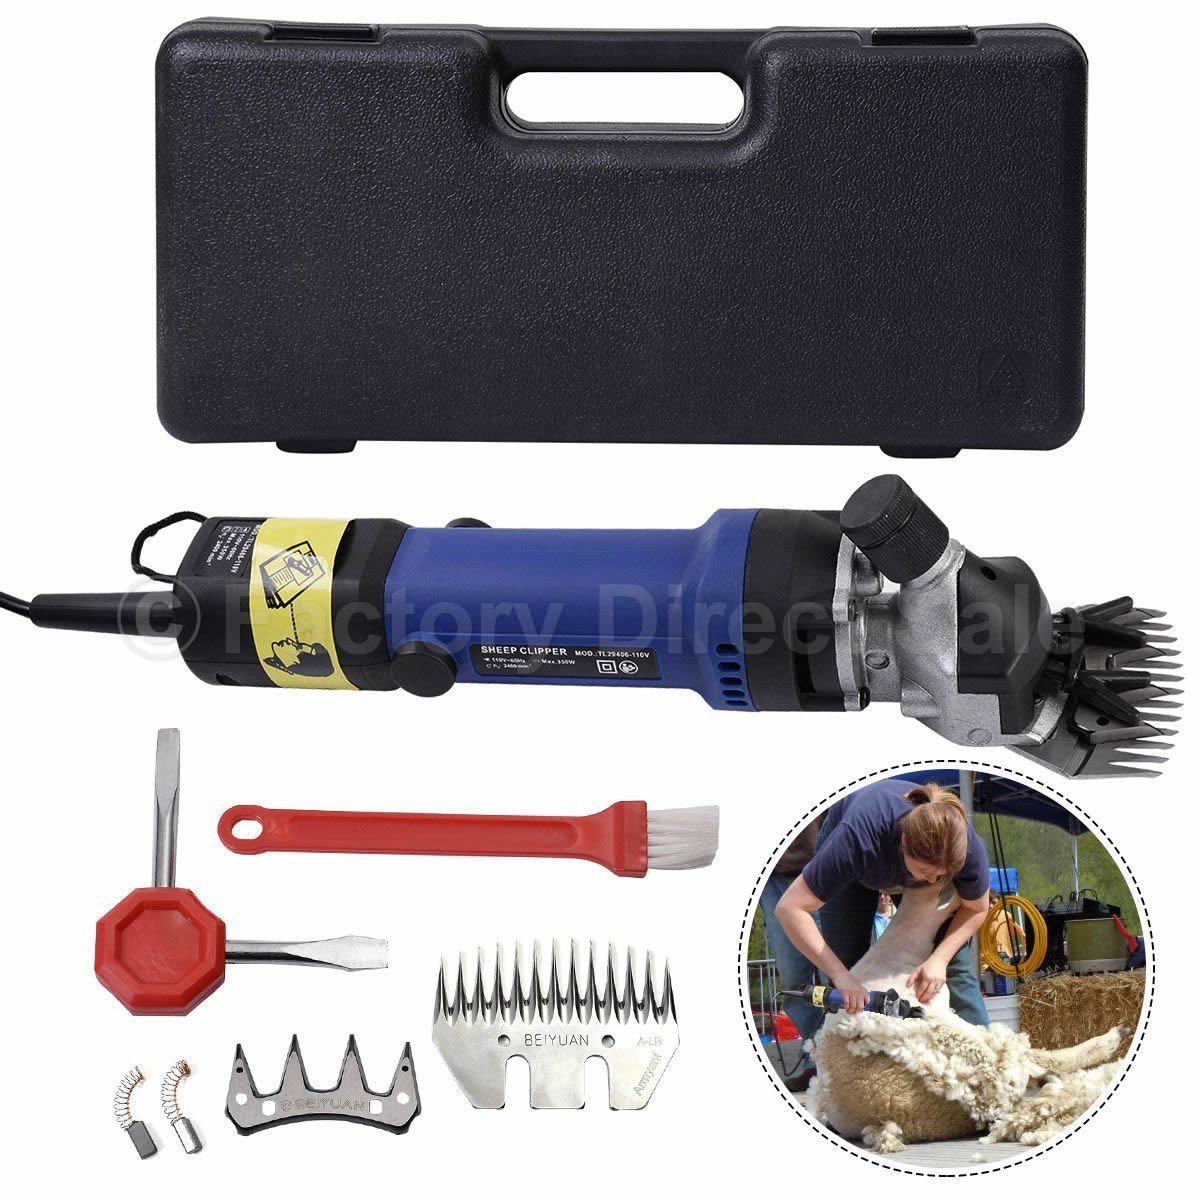 Waybackhome 320W Electronic Shearing Clipper Sheep Shearing Machine Goats Livestock